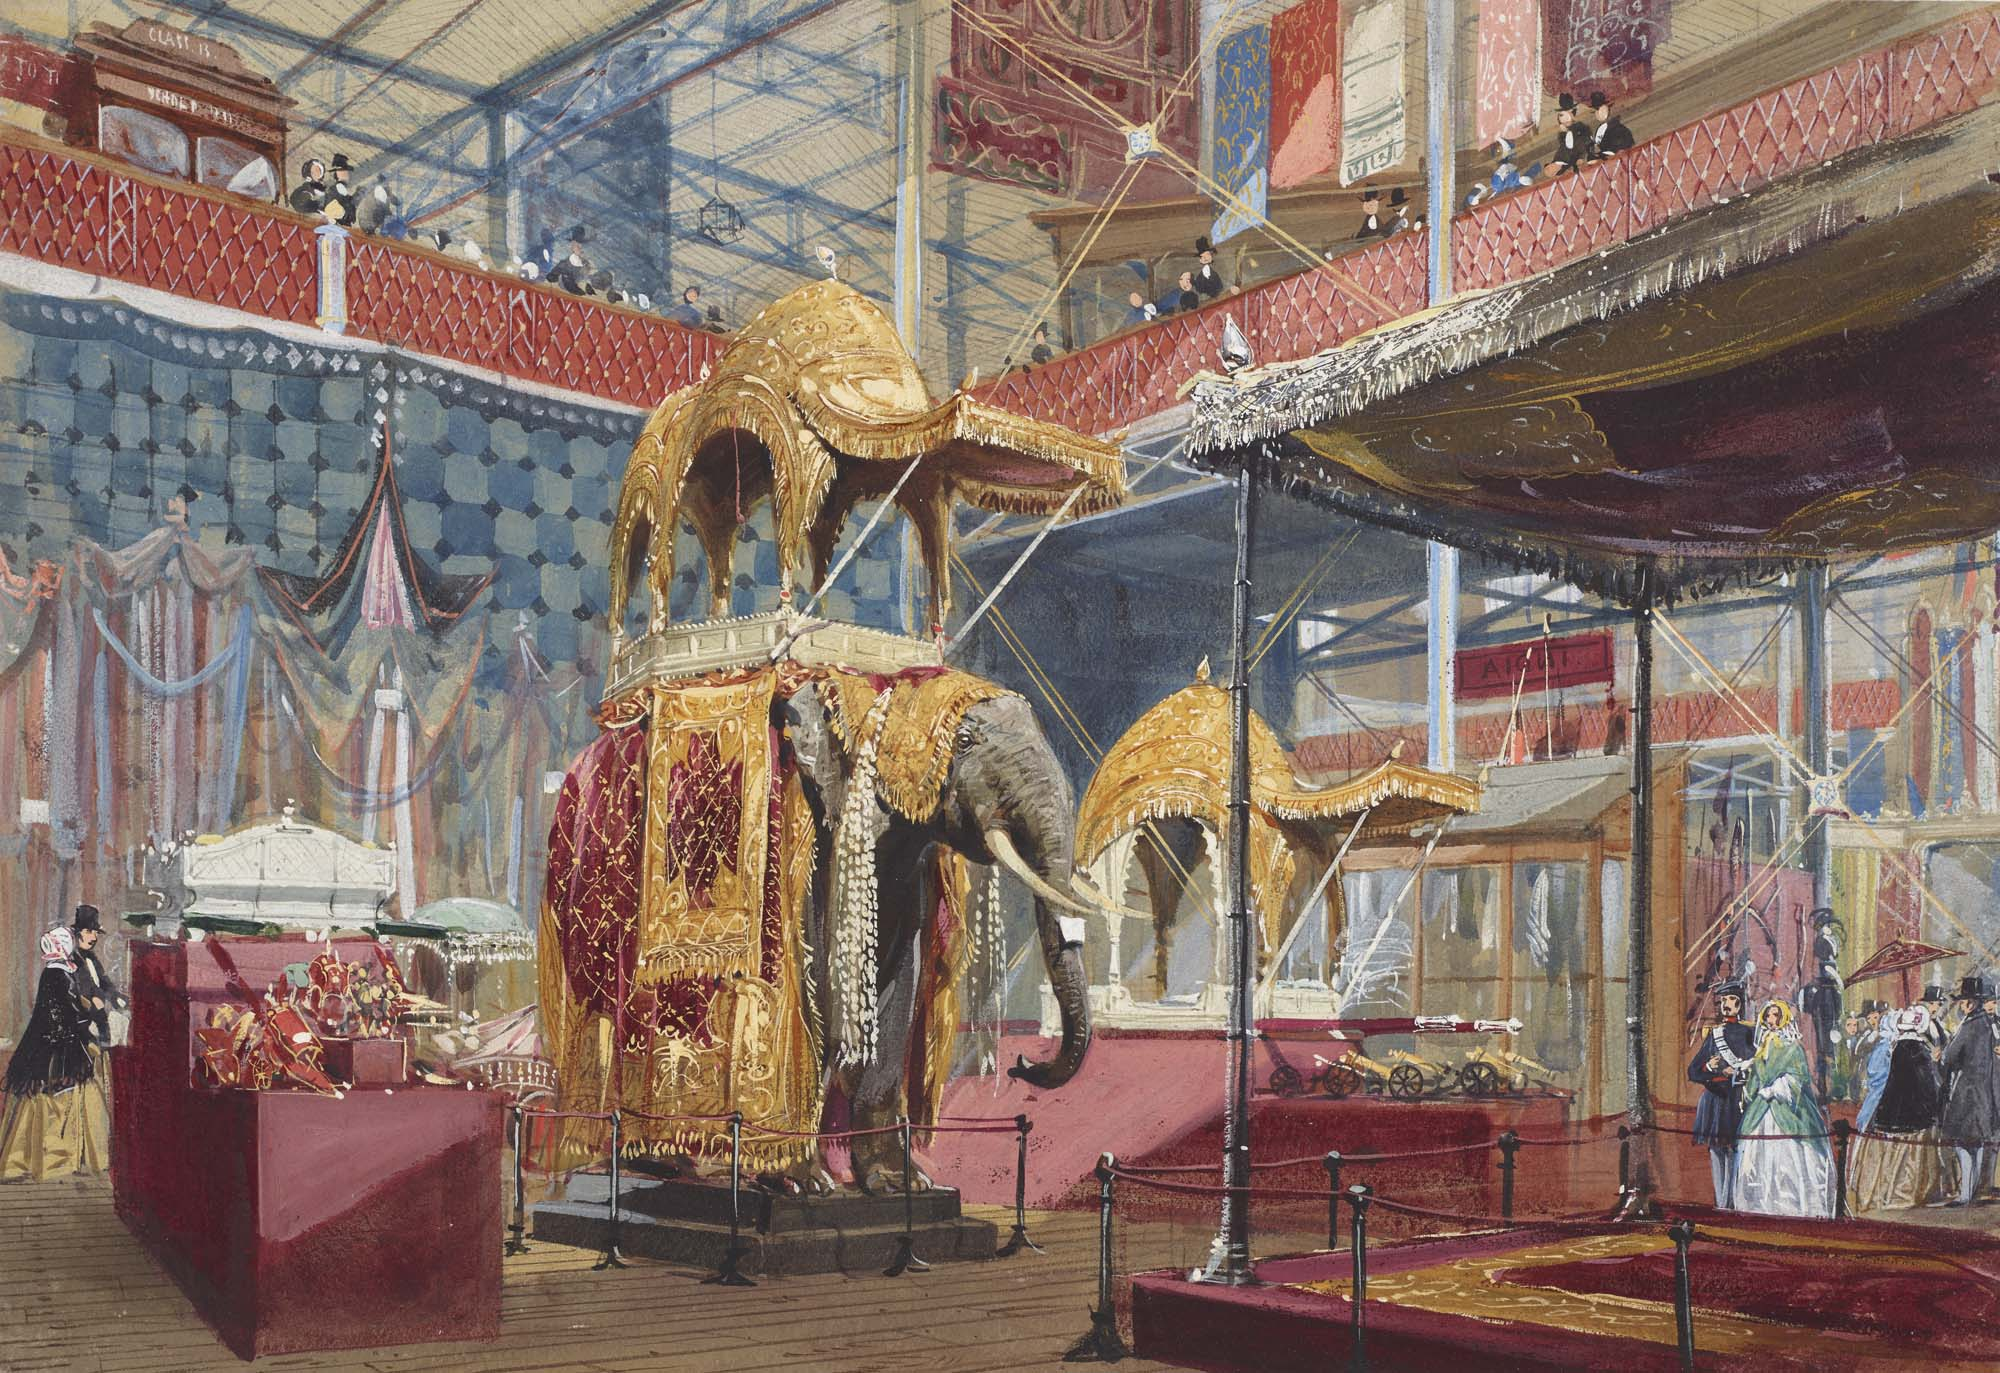 a watercolour drawing of a display with Indian elephant armour